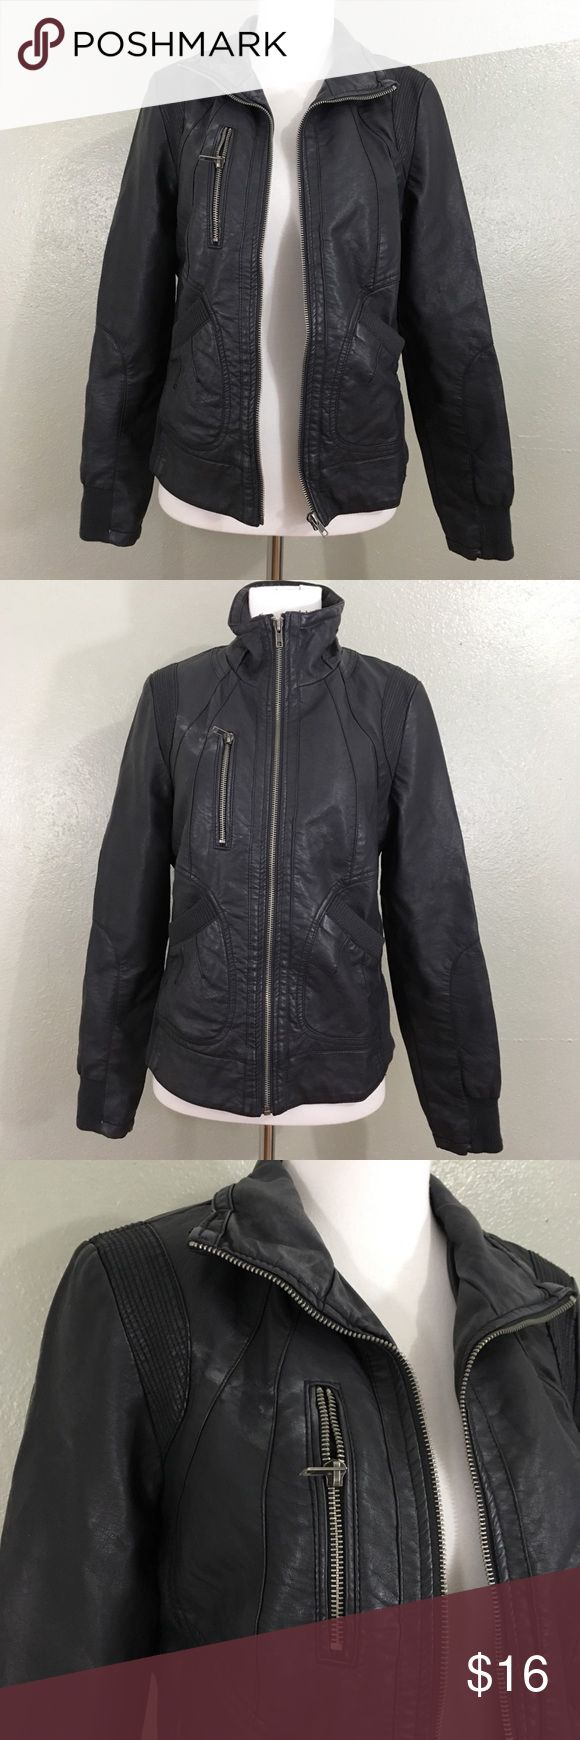 Xhileration Target Faux Leather Jacket Dark Gray Leather